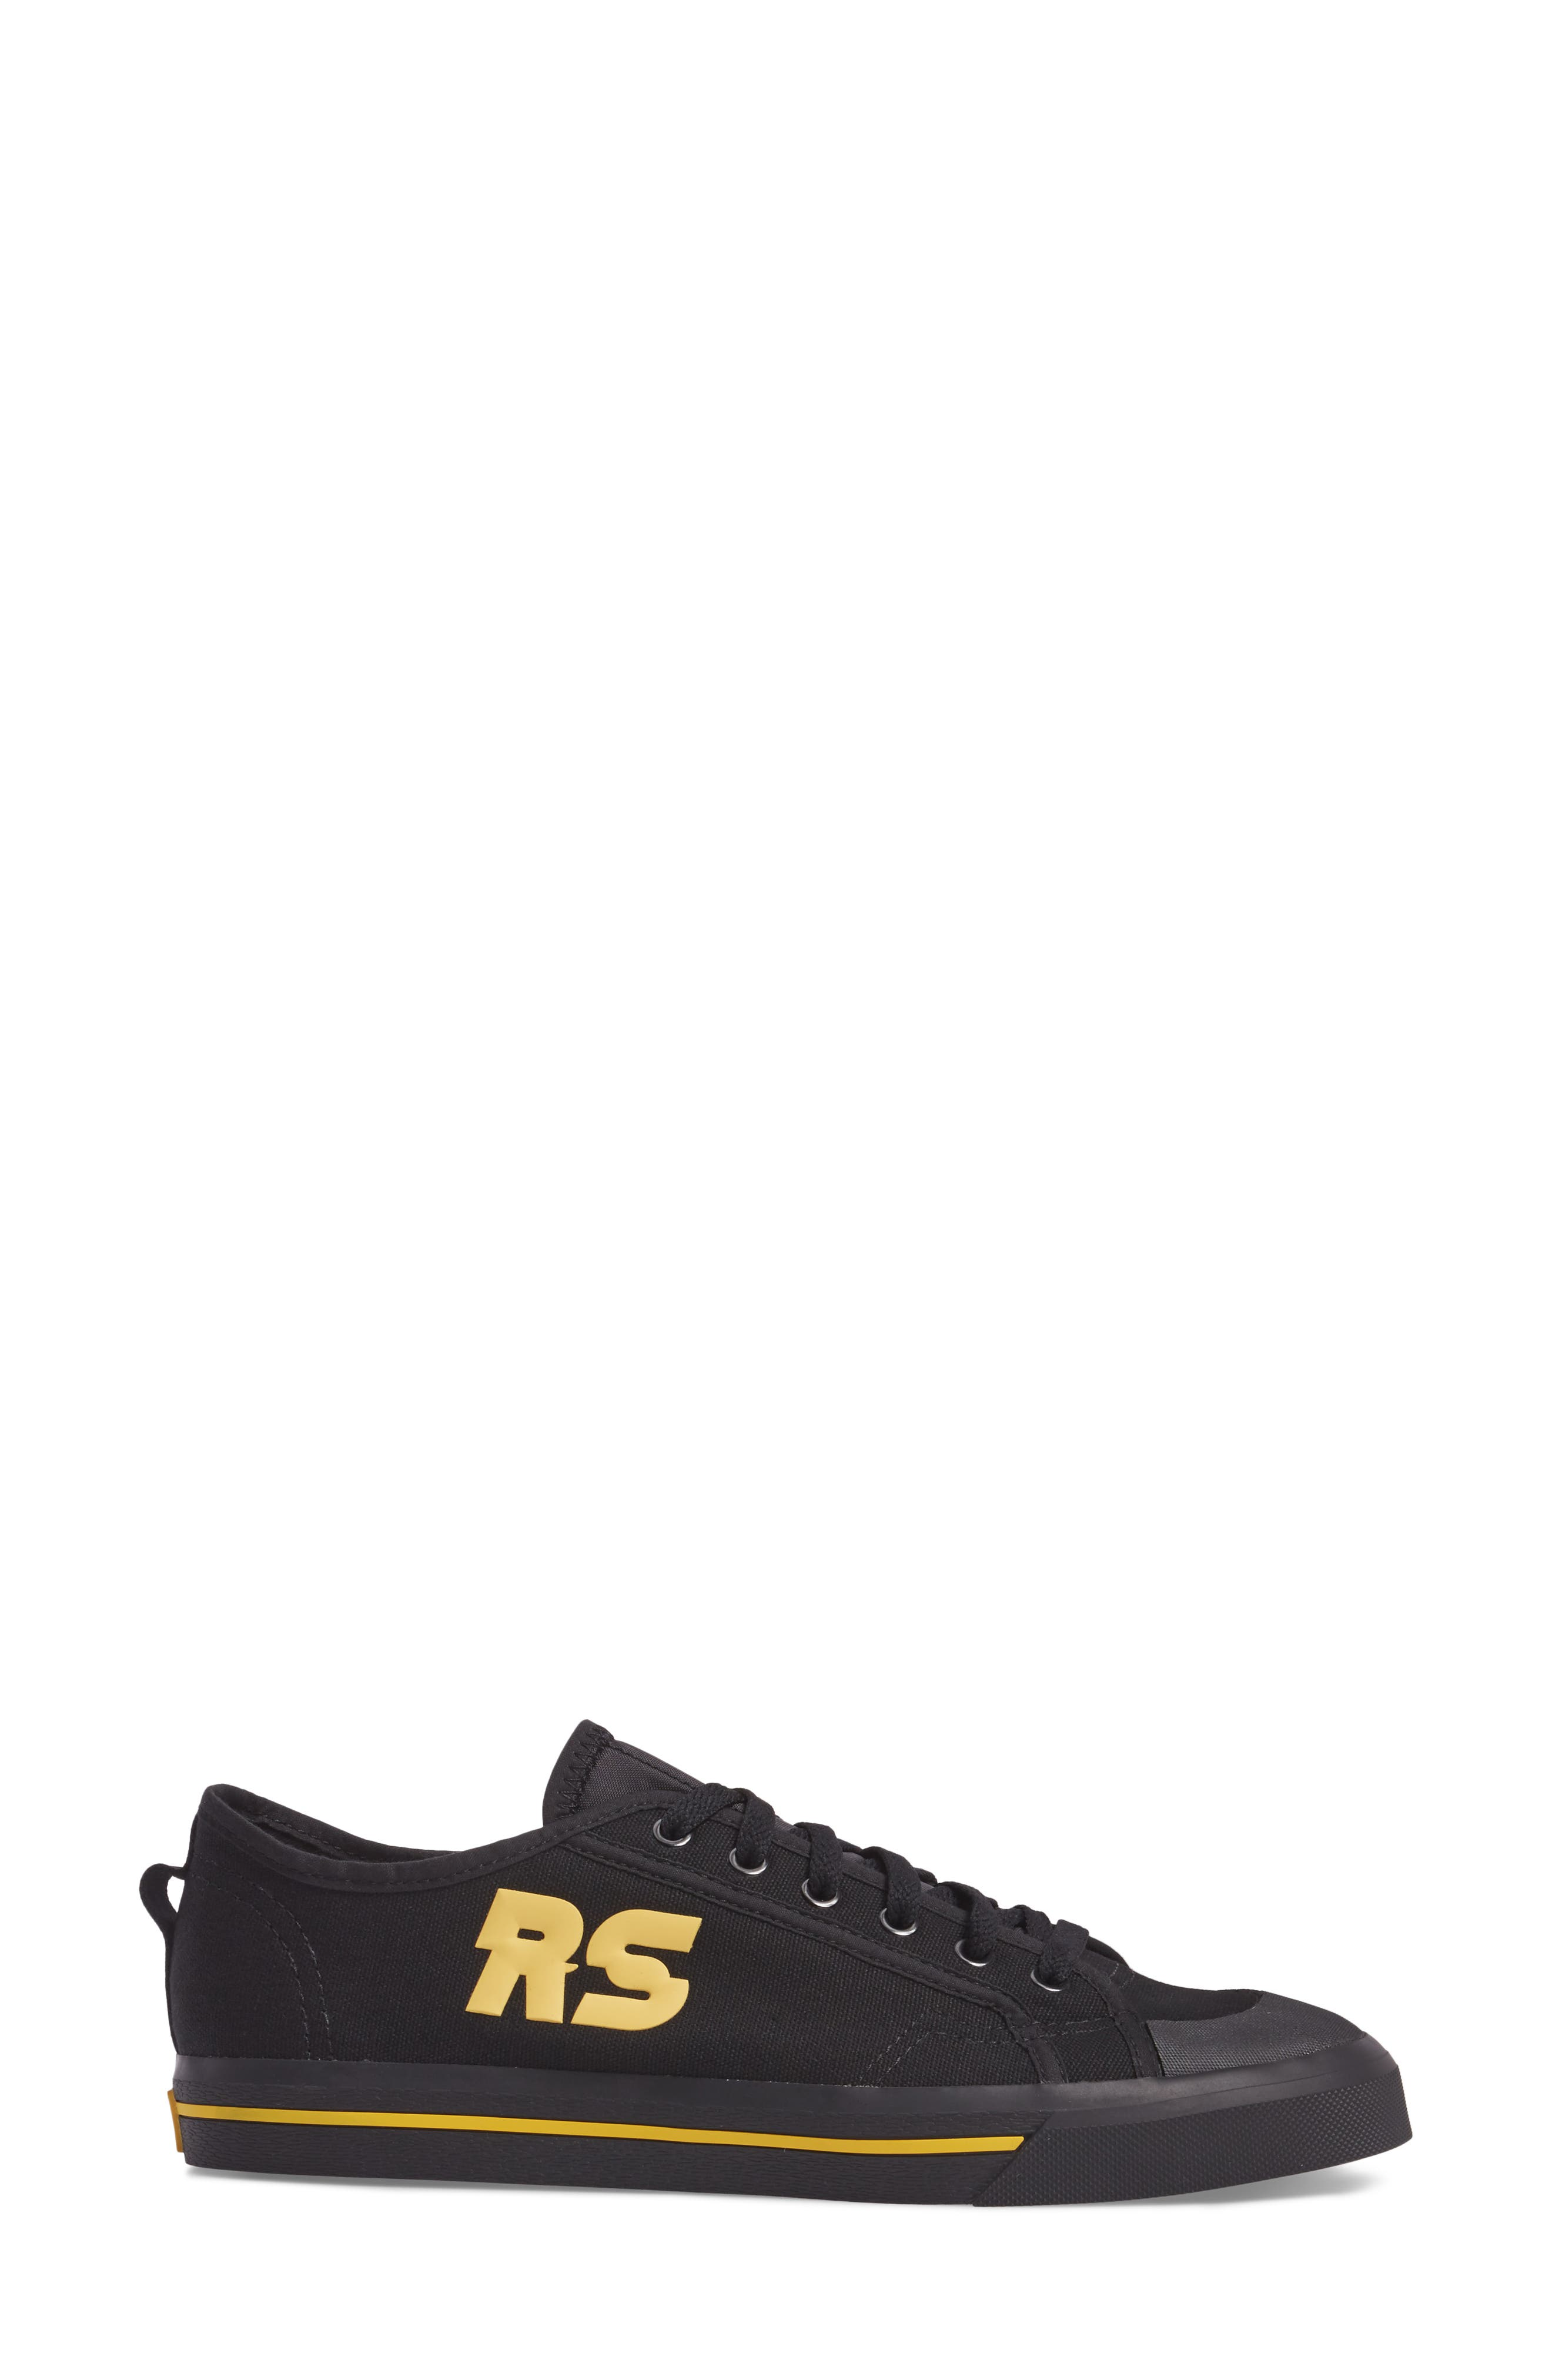 adidas by Raf Simons Spirit Low Top Sneaker,                             Alternate thumbnail 3, color,                             001